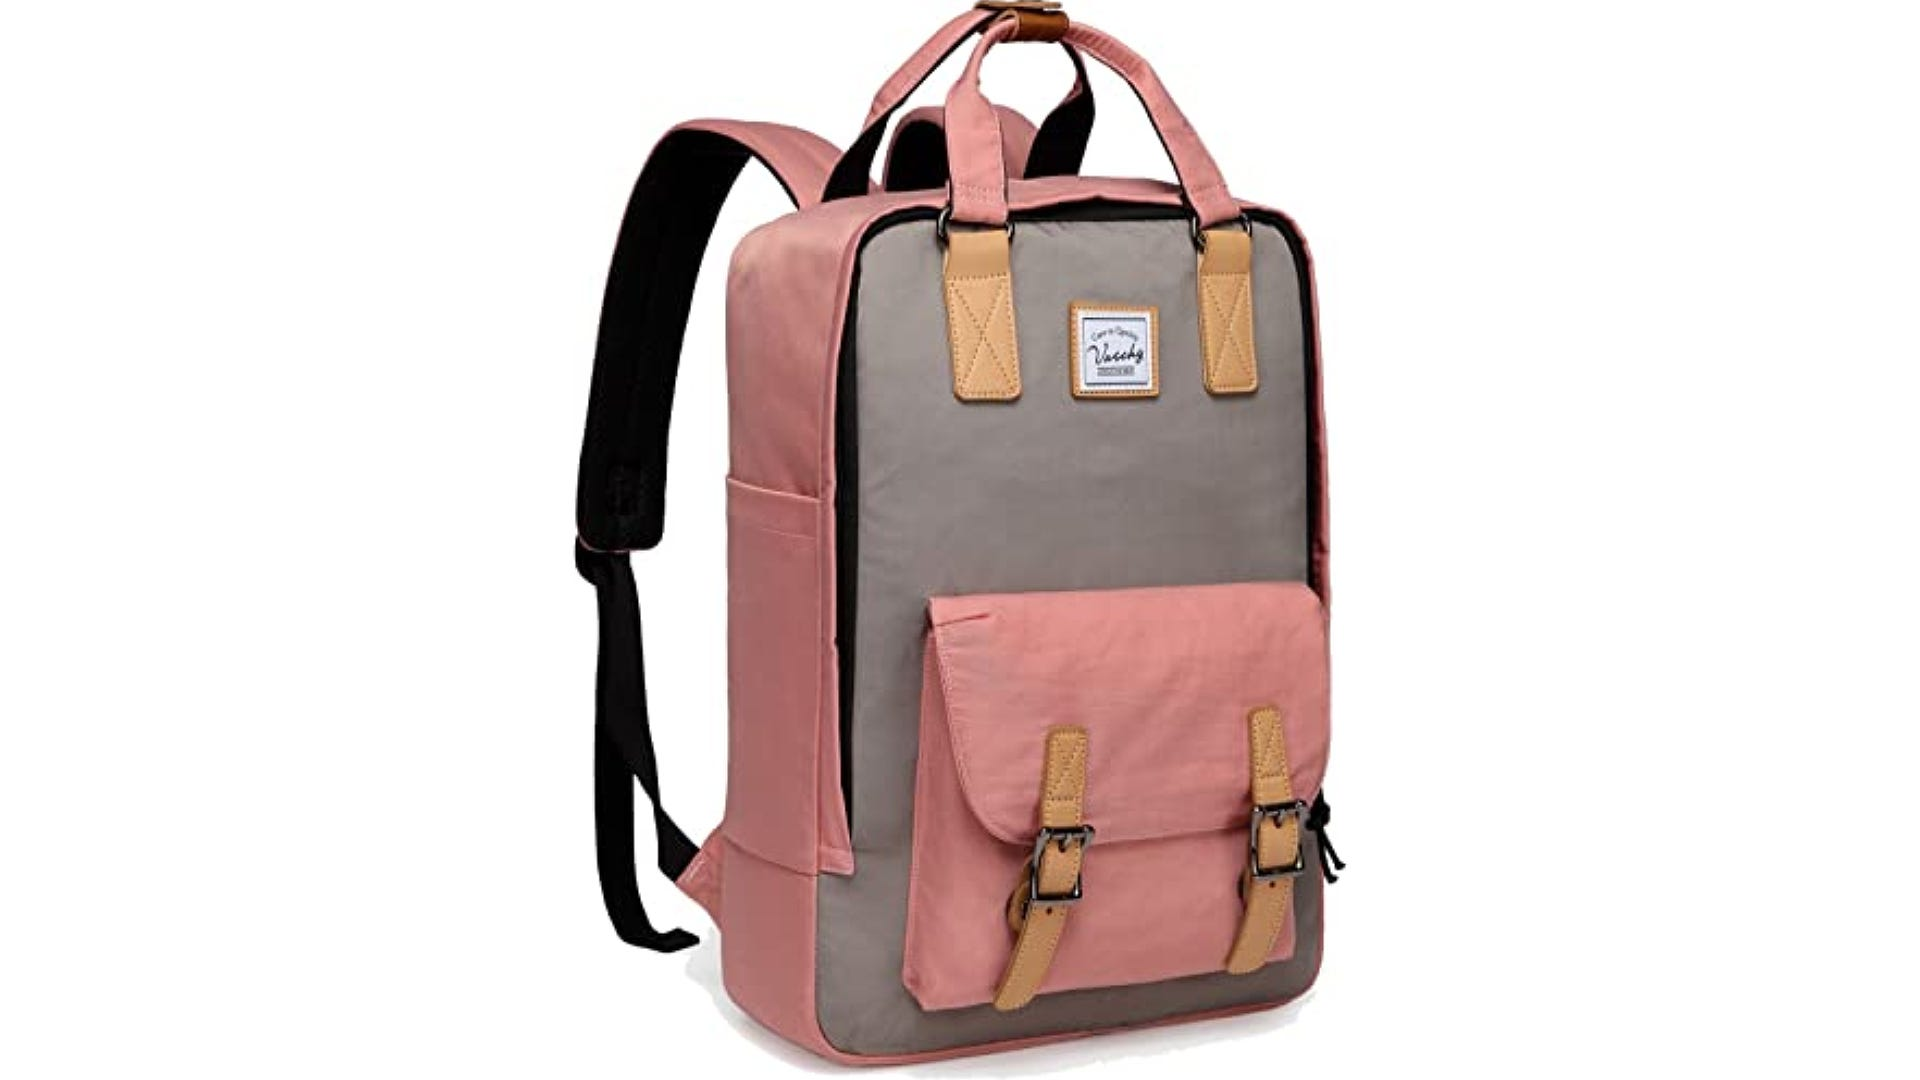 A side view of a pink and gray vintage-inspired backpack.